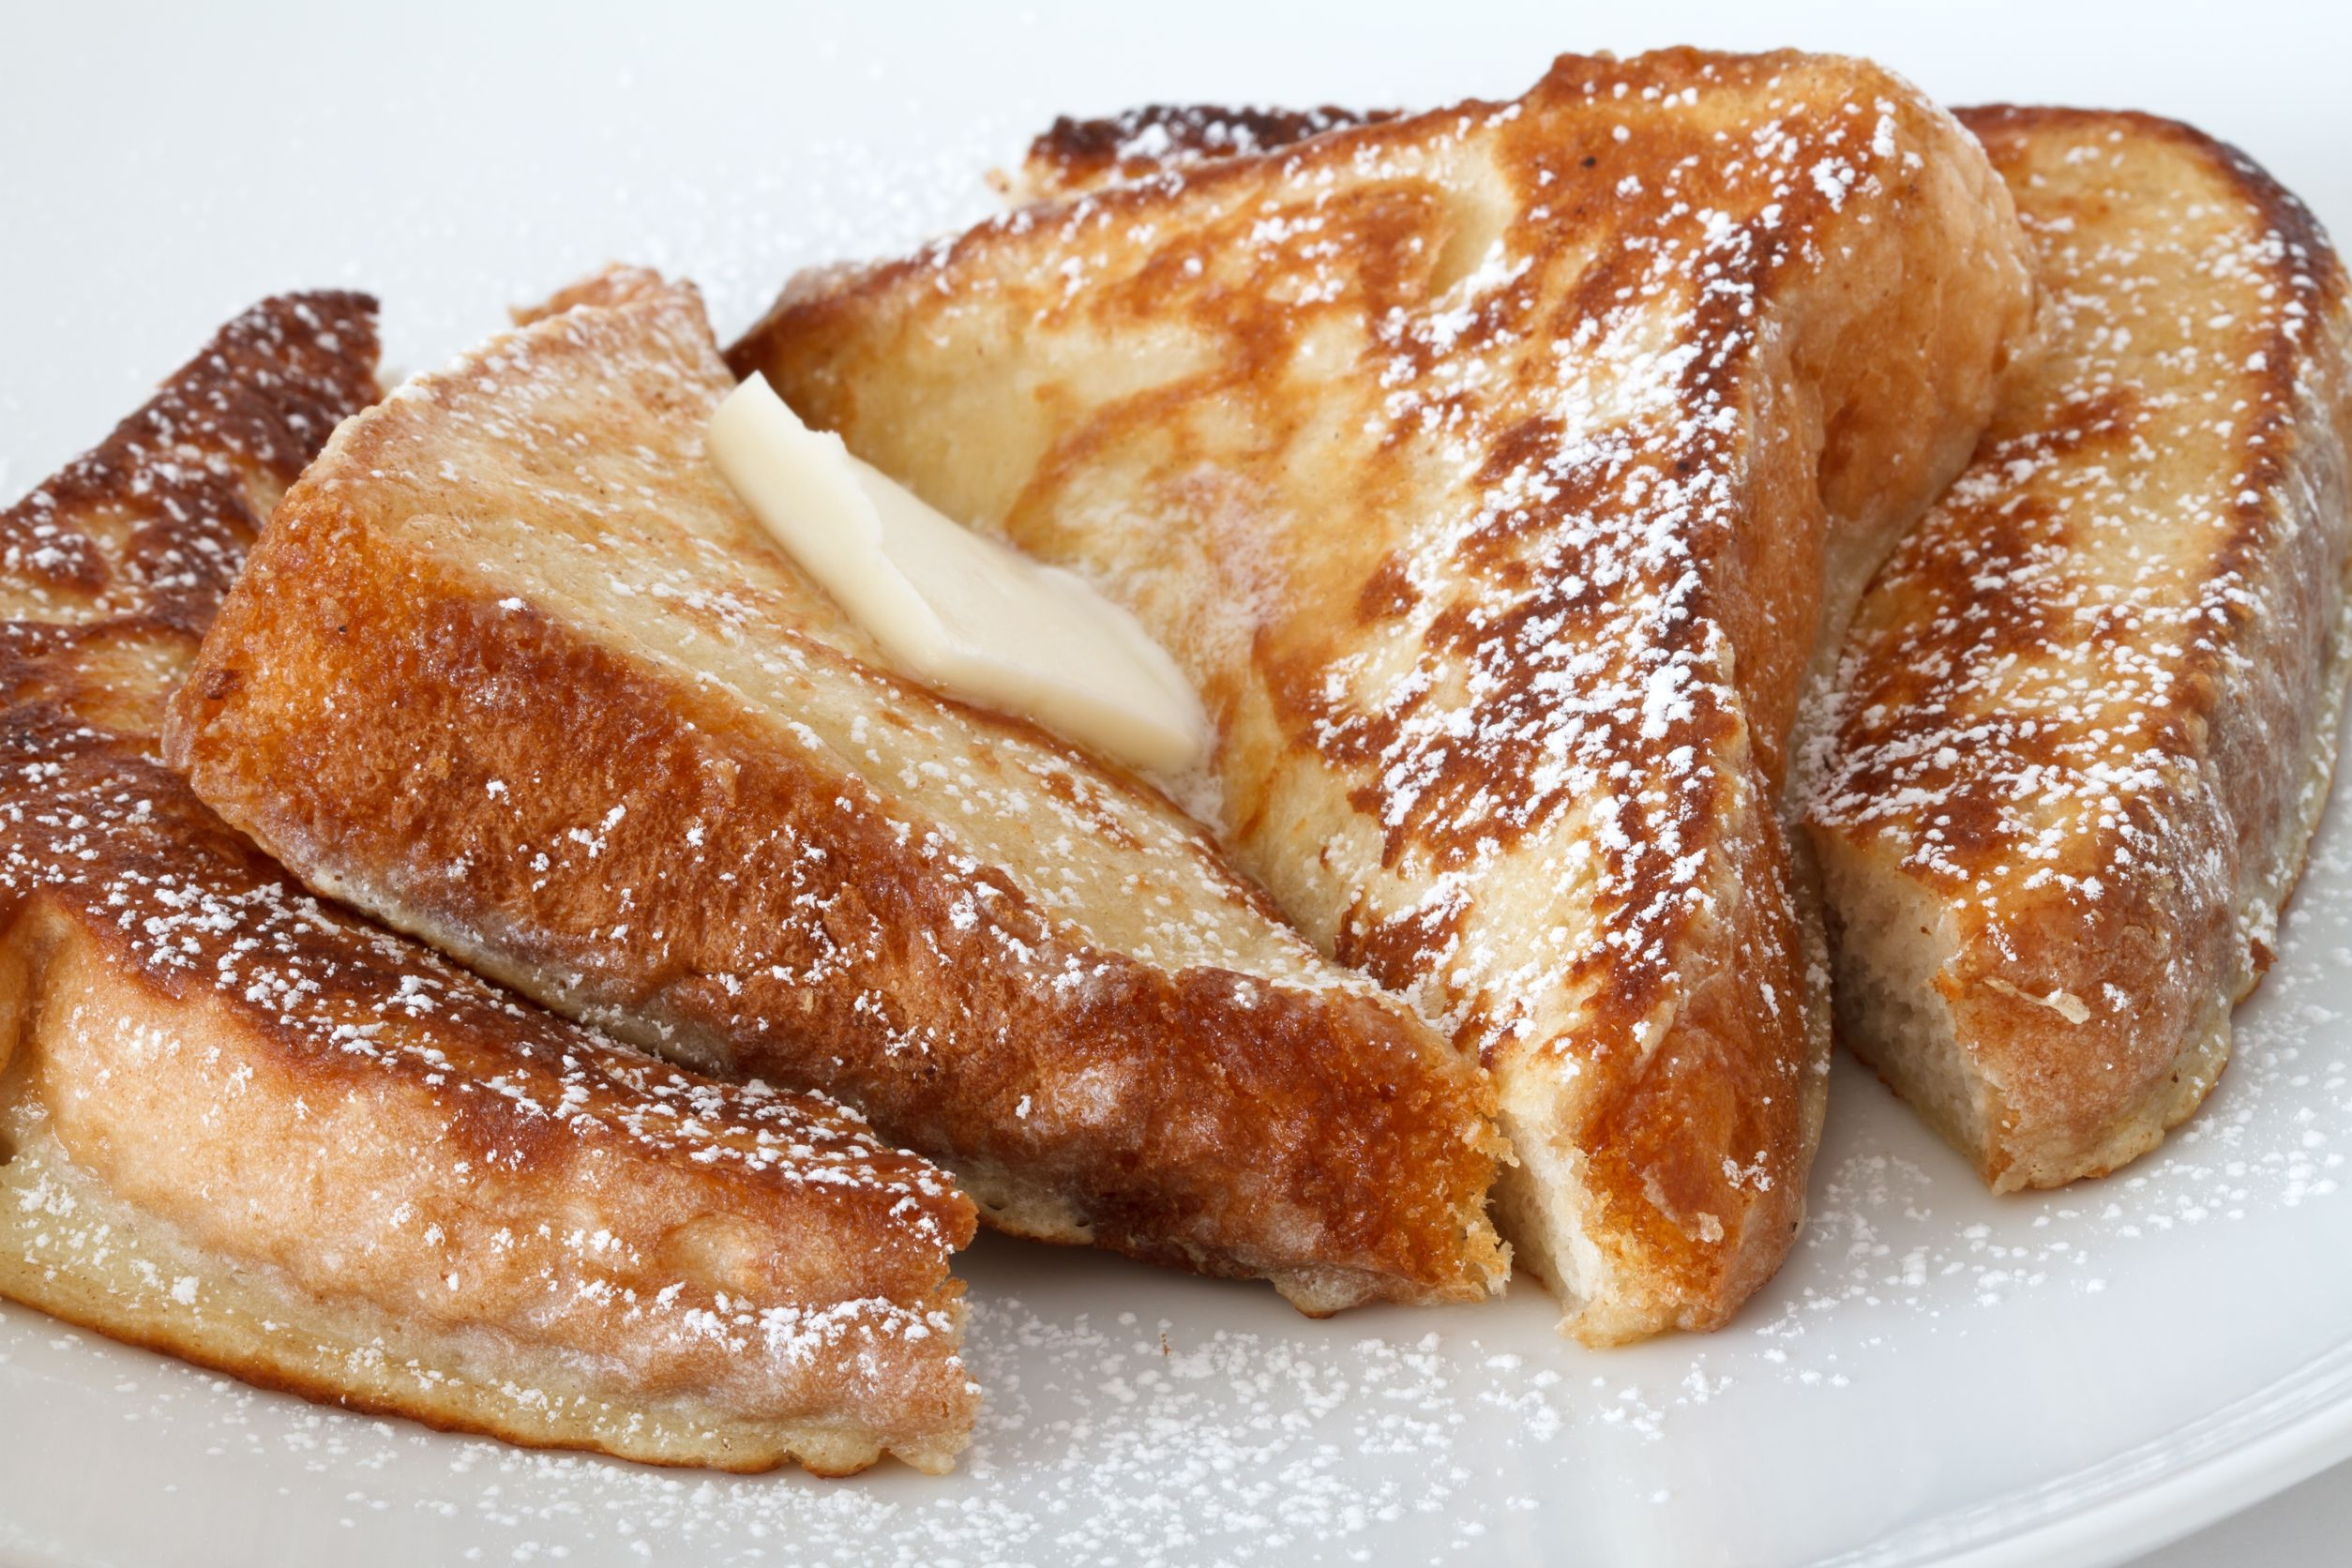 French Toast Hd Wallpaper